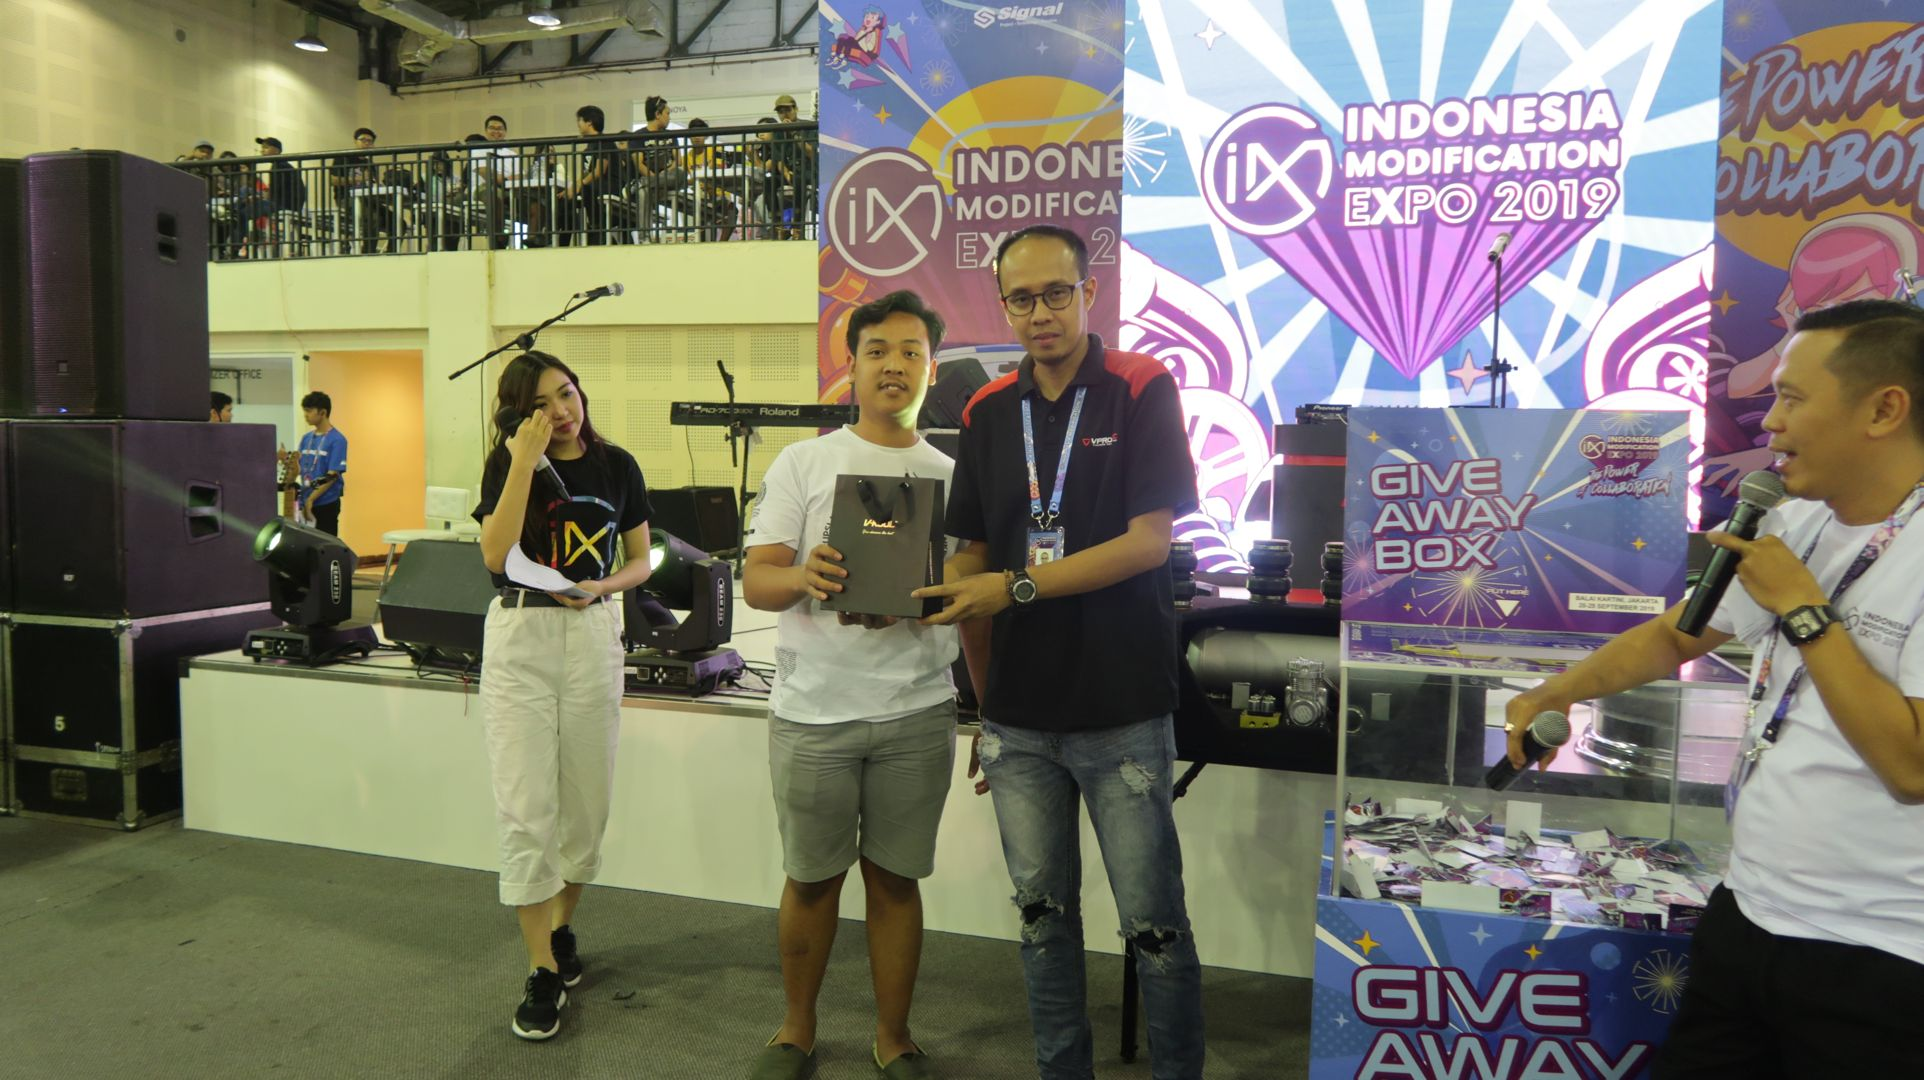 Imx - Indonesia modification expo giveaway 2019 (21)